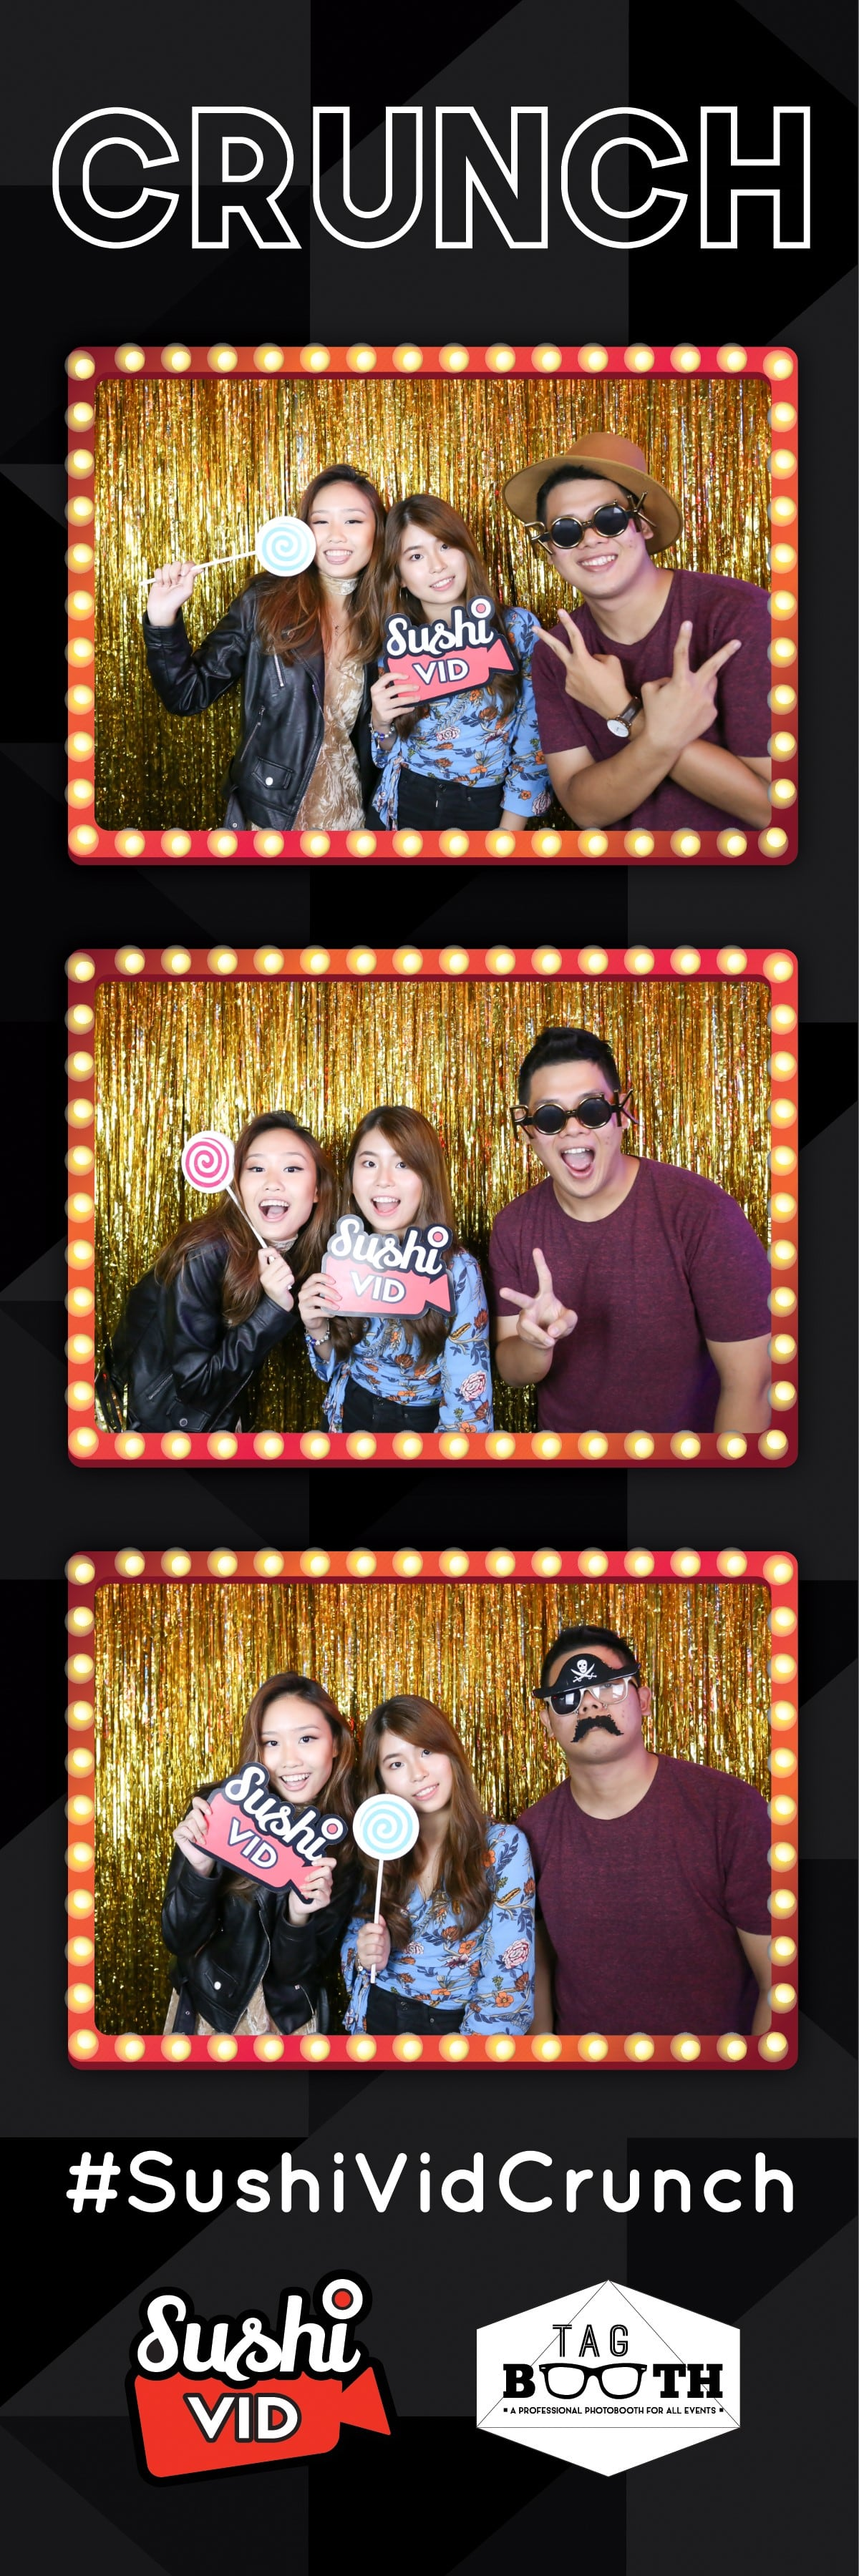 Sushivid+crunch+tagbooth1+54